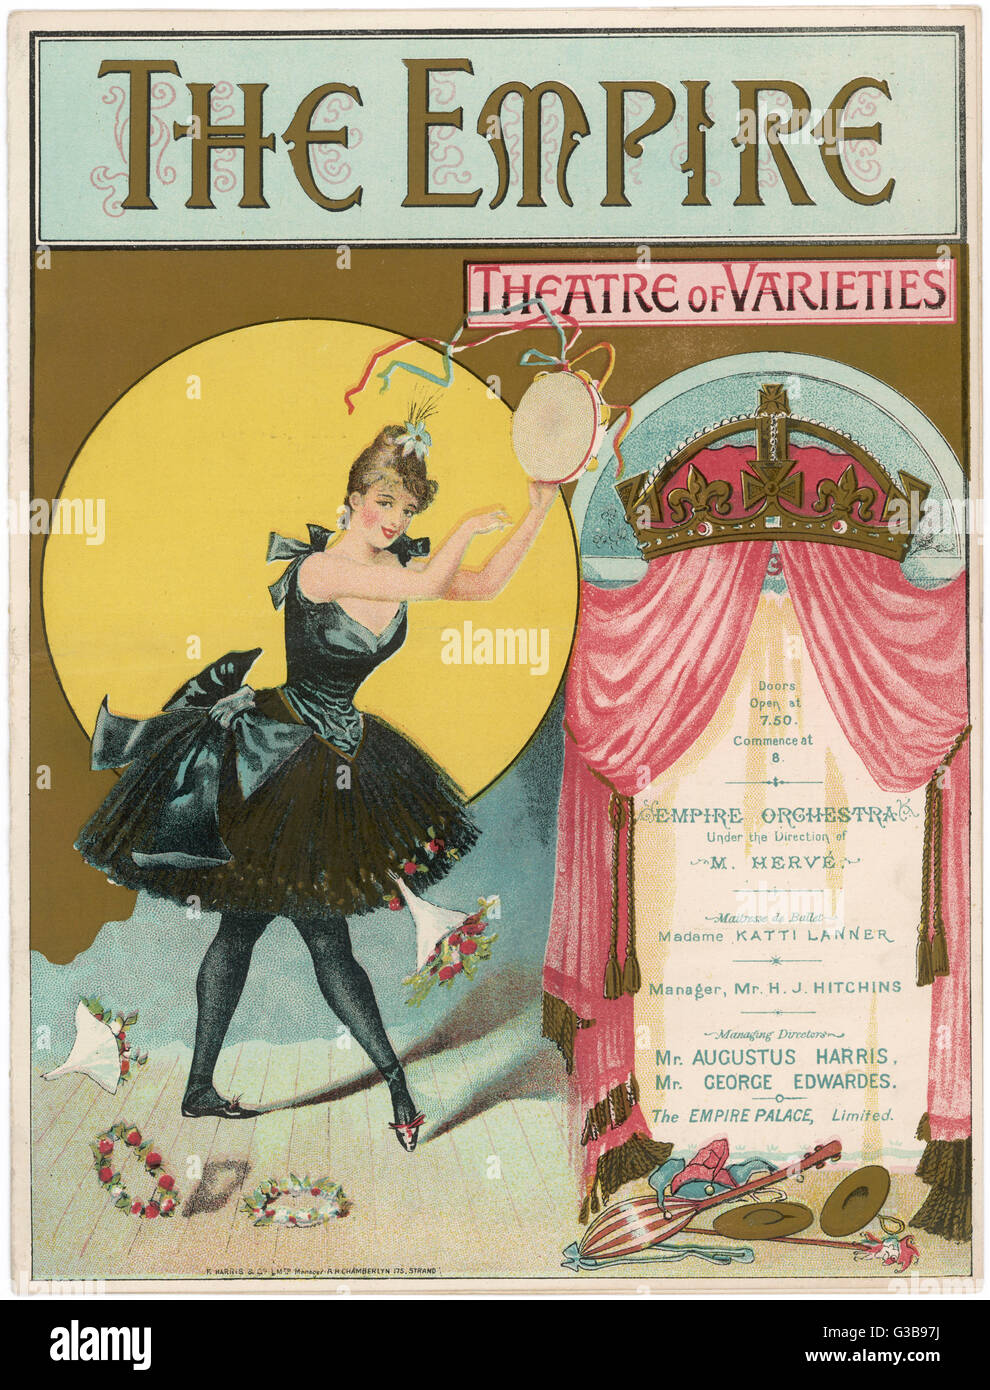 The cover of a programme for  the Empire theatre, London.  The bill featured comedians  including Dan Leno and  - Stock Image